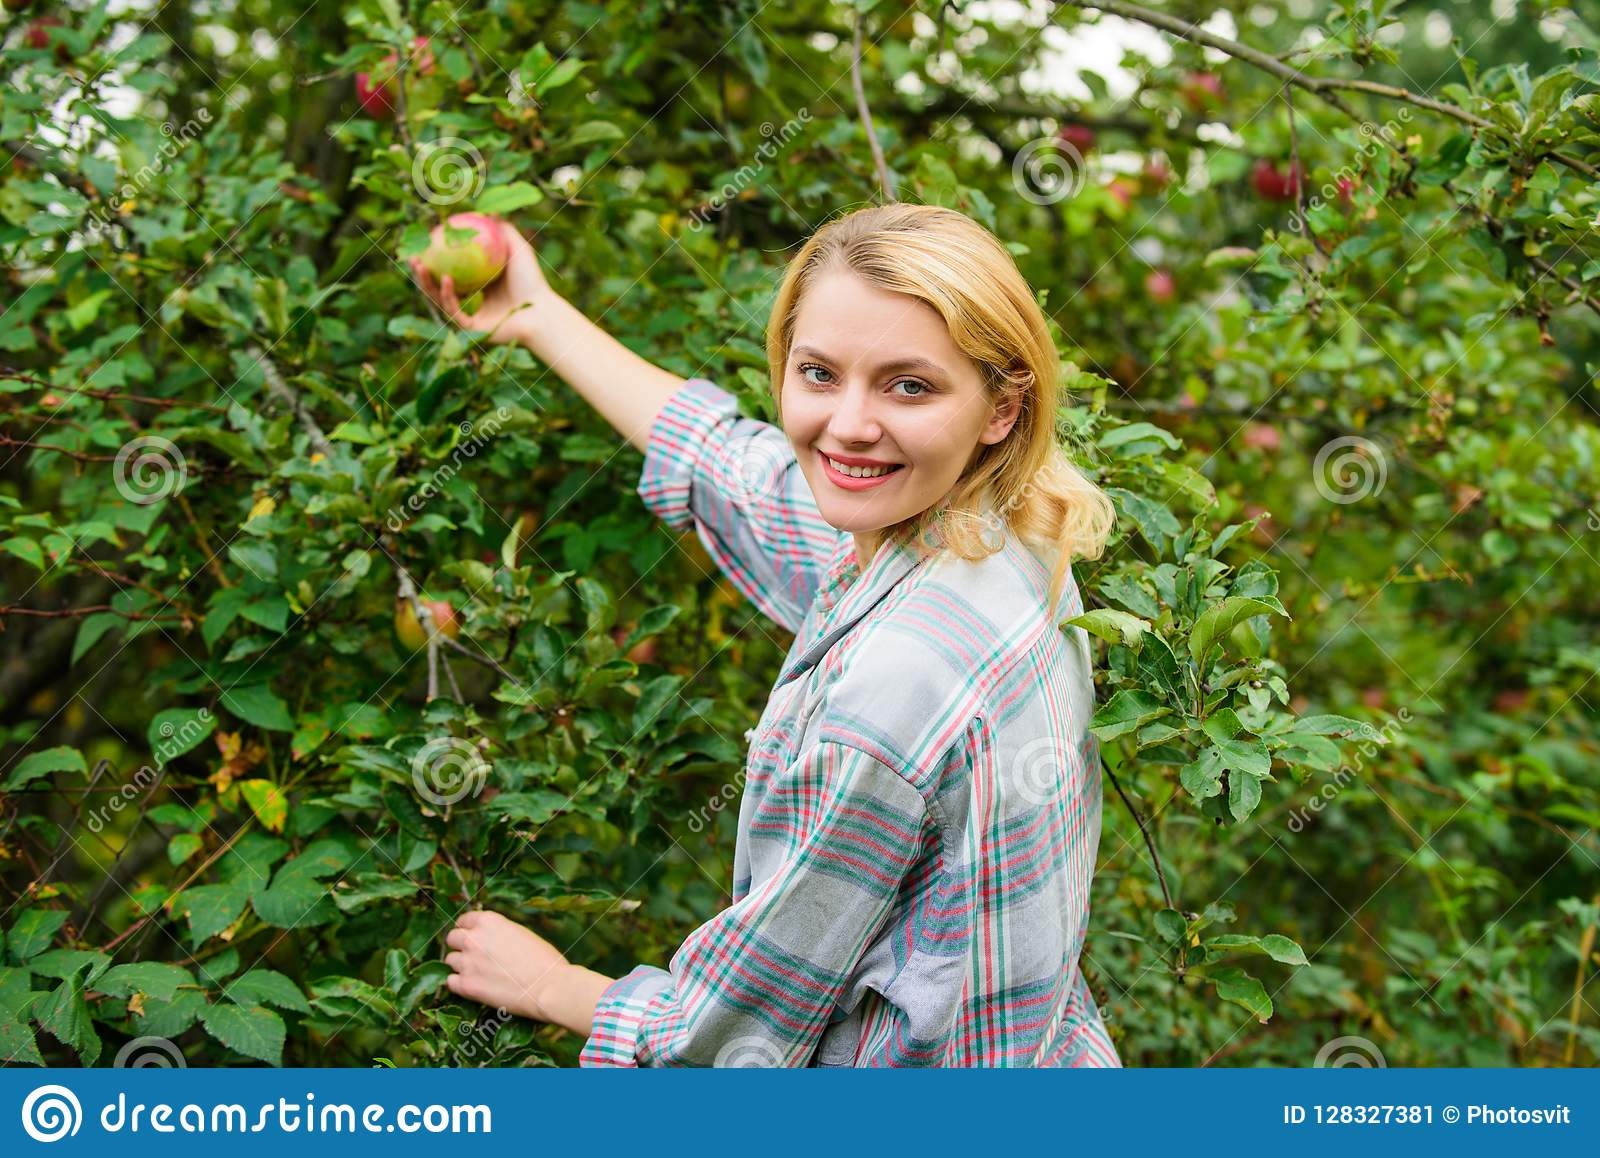 Farm producing organic eco friendly natural product. Girl gather apples harvest garden autumn day. Farmer lady picking